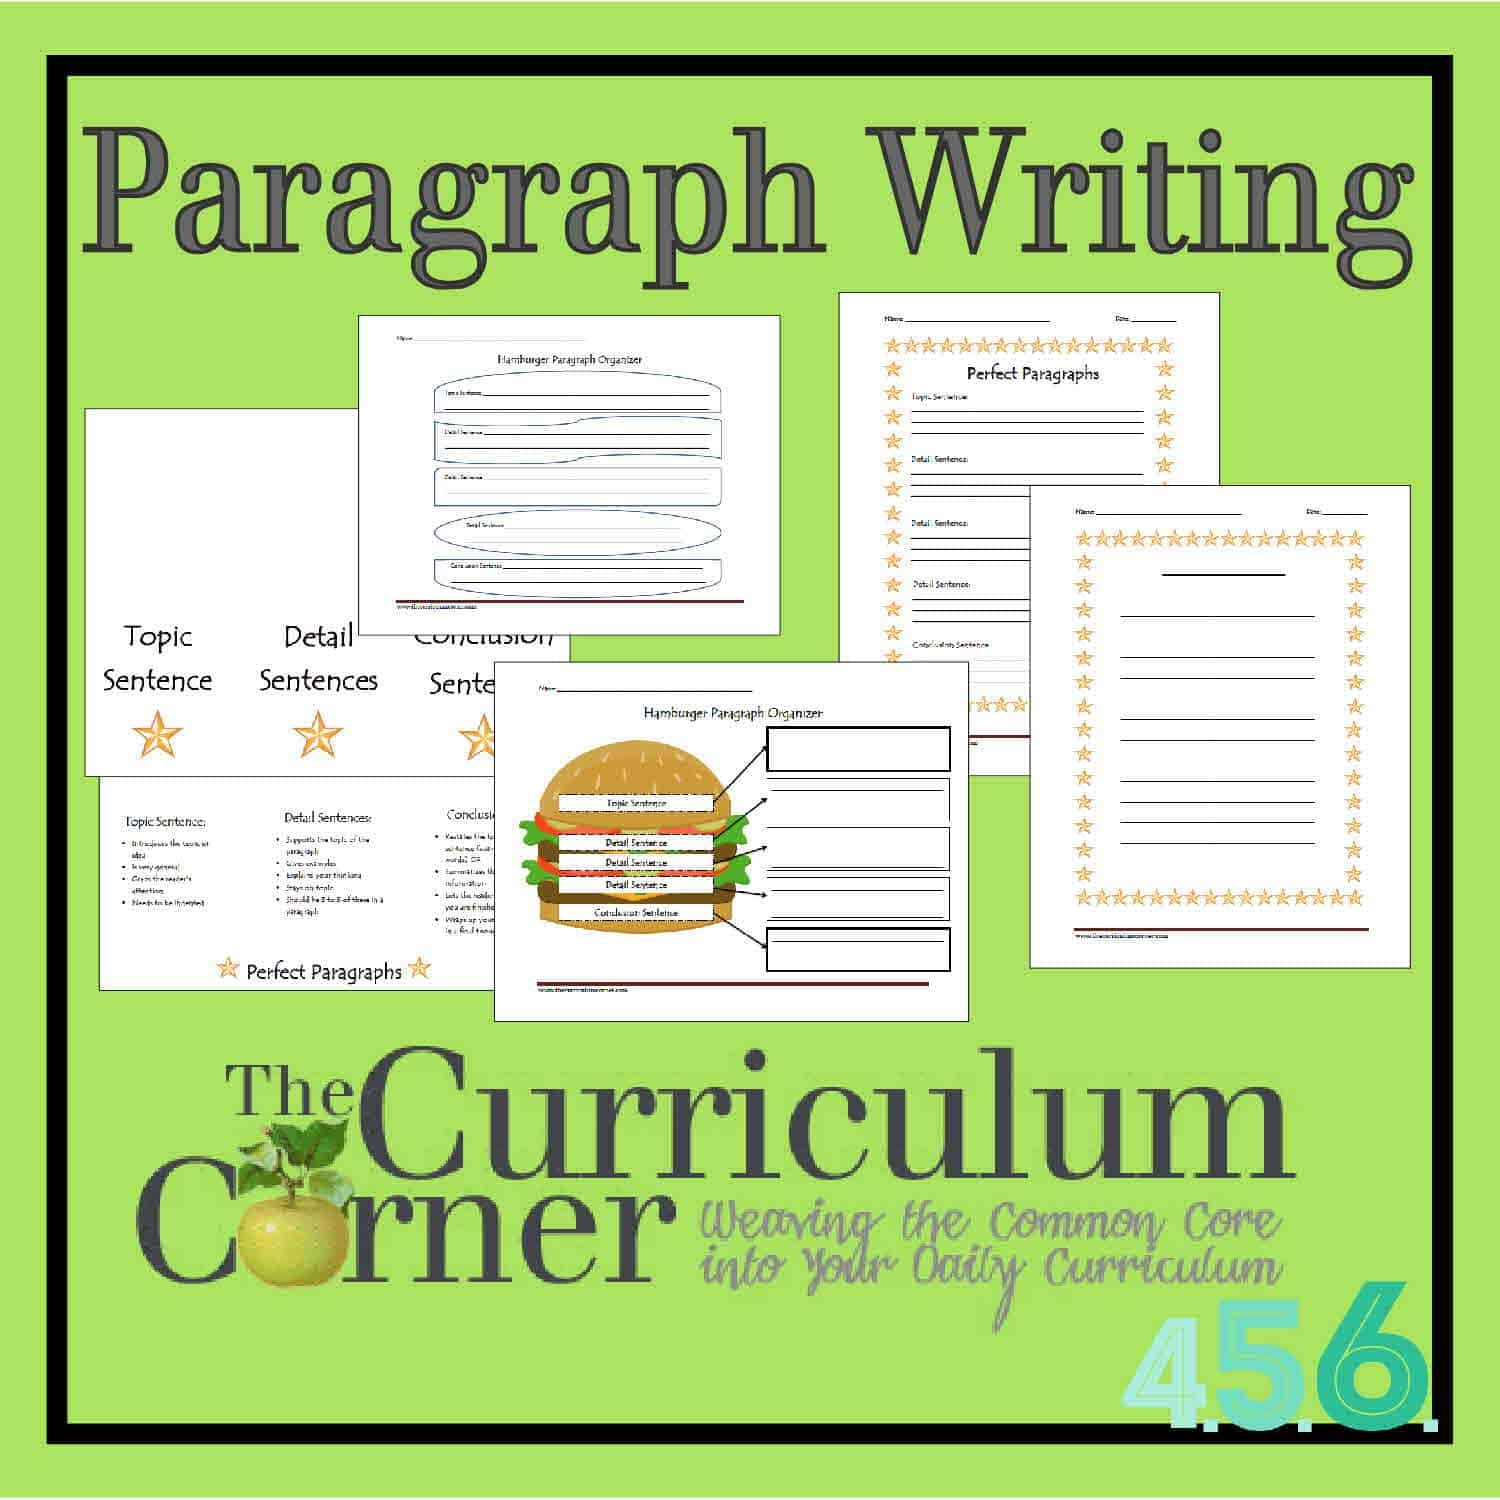 Worksheets Writing Paragraphs Worksheet paragraph writing the curriculum corner 4 5 6 activities for 4th 5th and 6th grades by corner